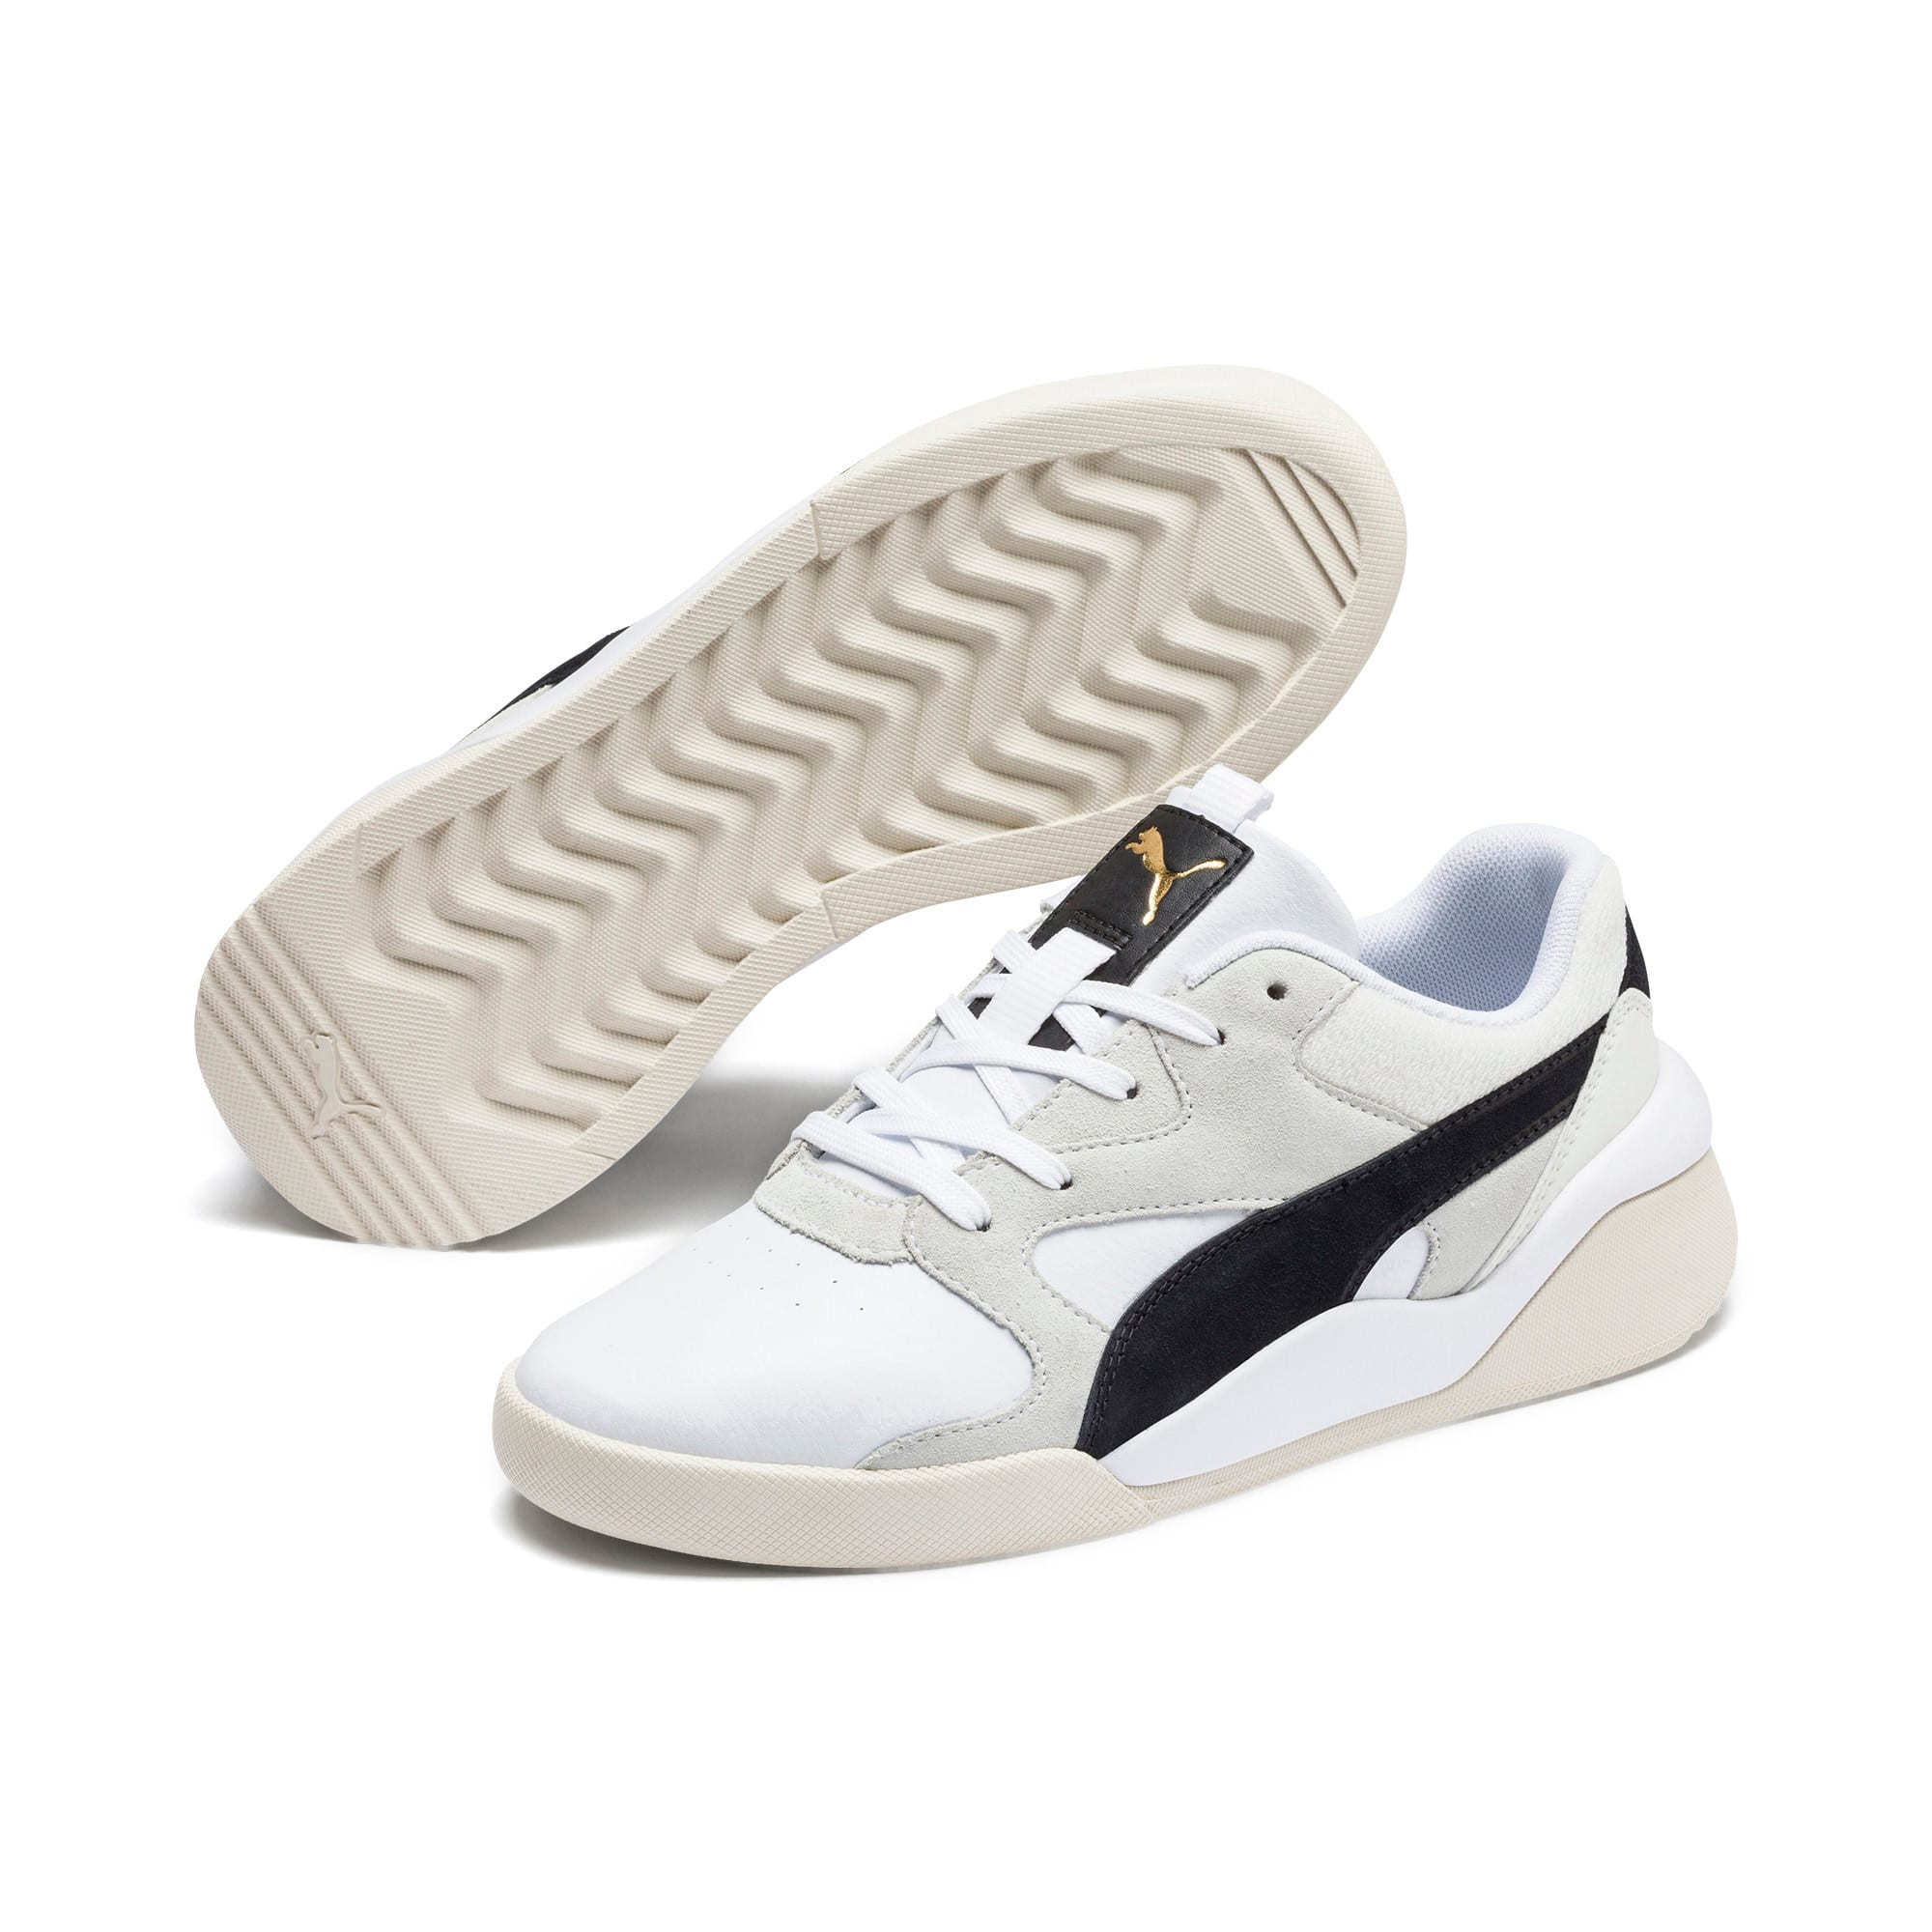 Thumbnail 3 of Aeon Heritage Women's Sneakers, Puma White-Puma Black, medium